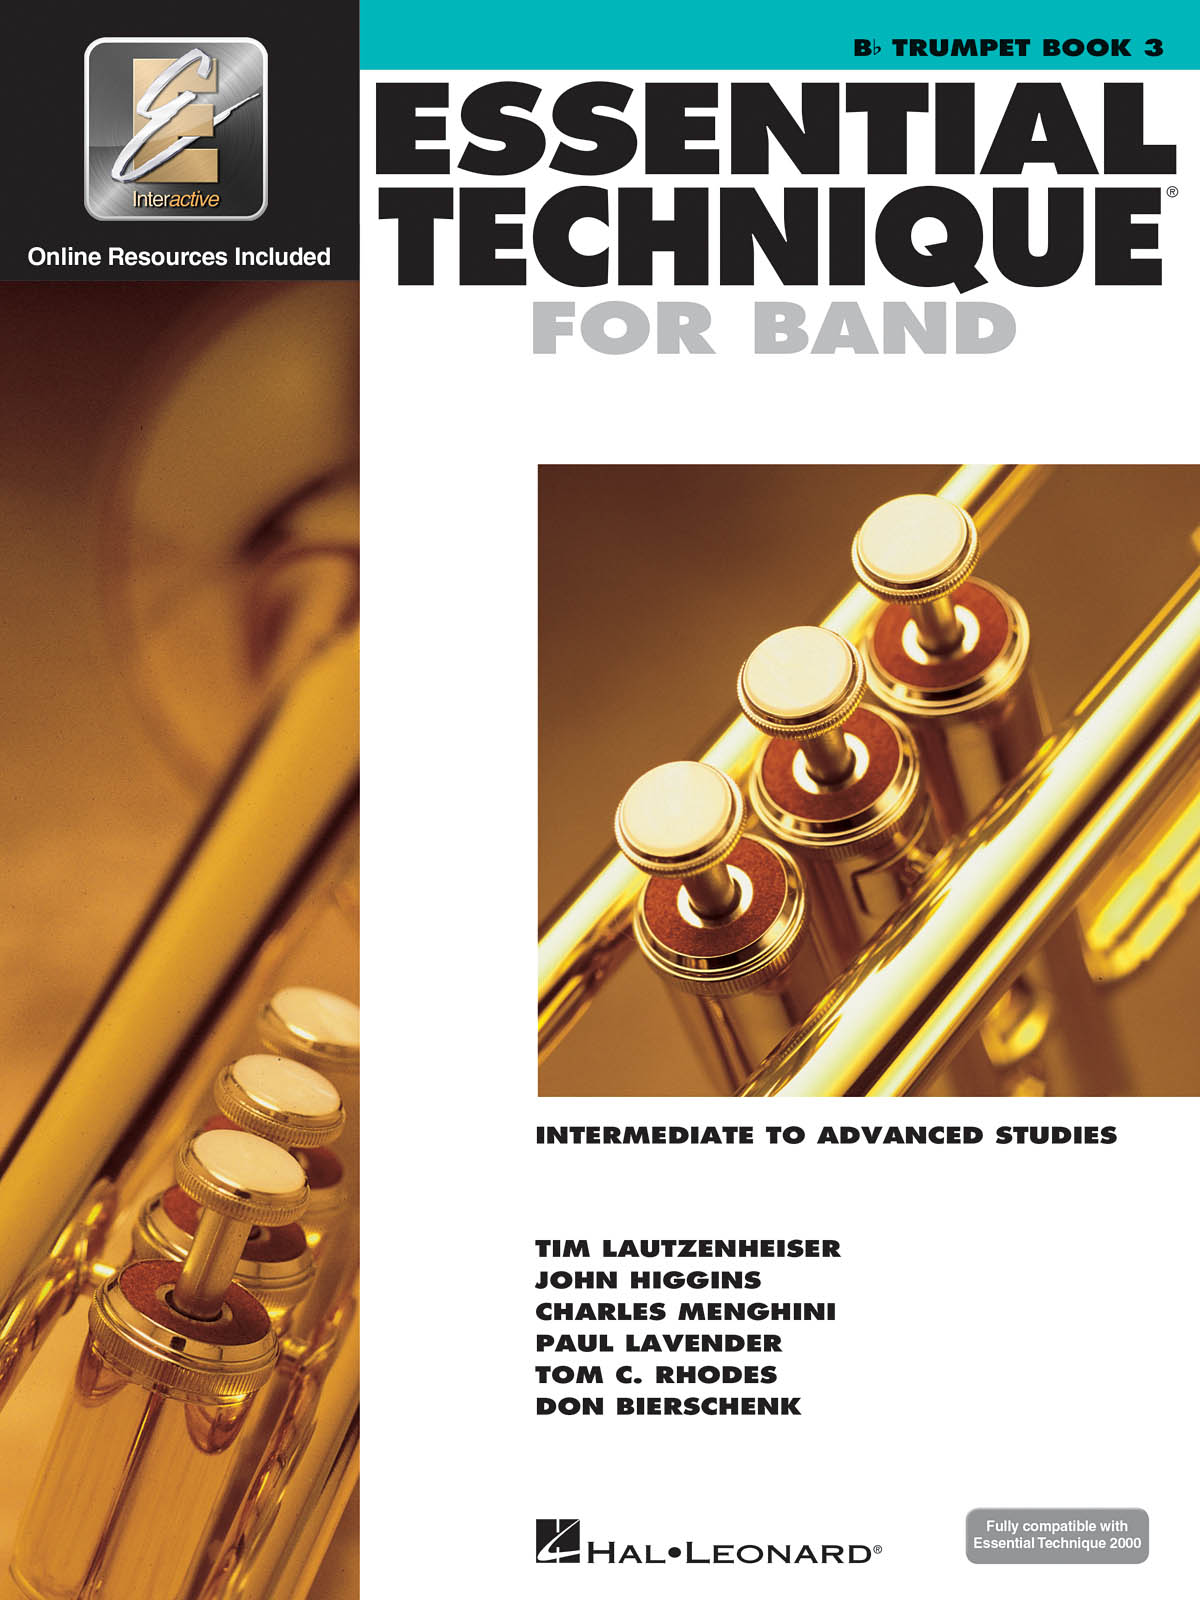 Essential Elements for Band - Book 3 - Trumpet: Trumpet Solo: Score